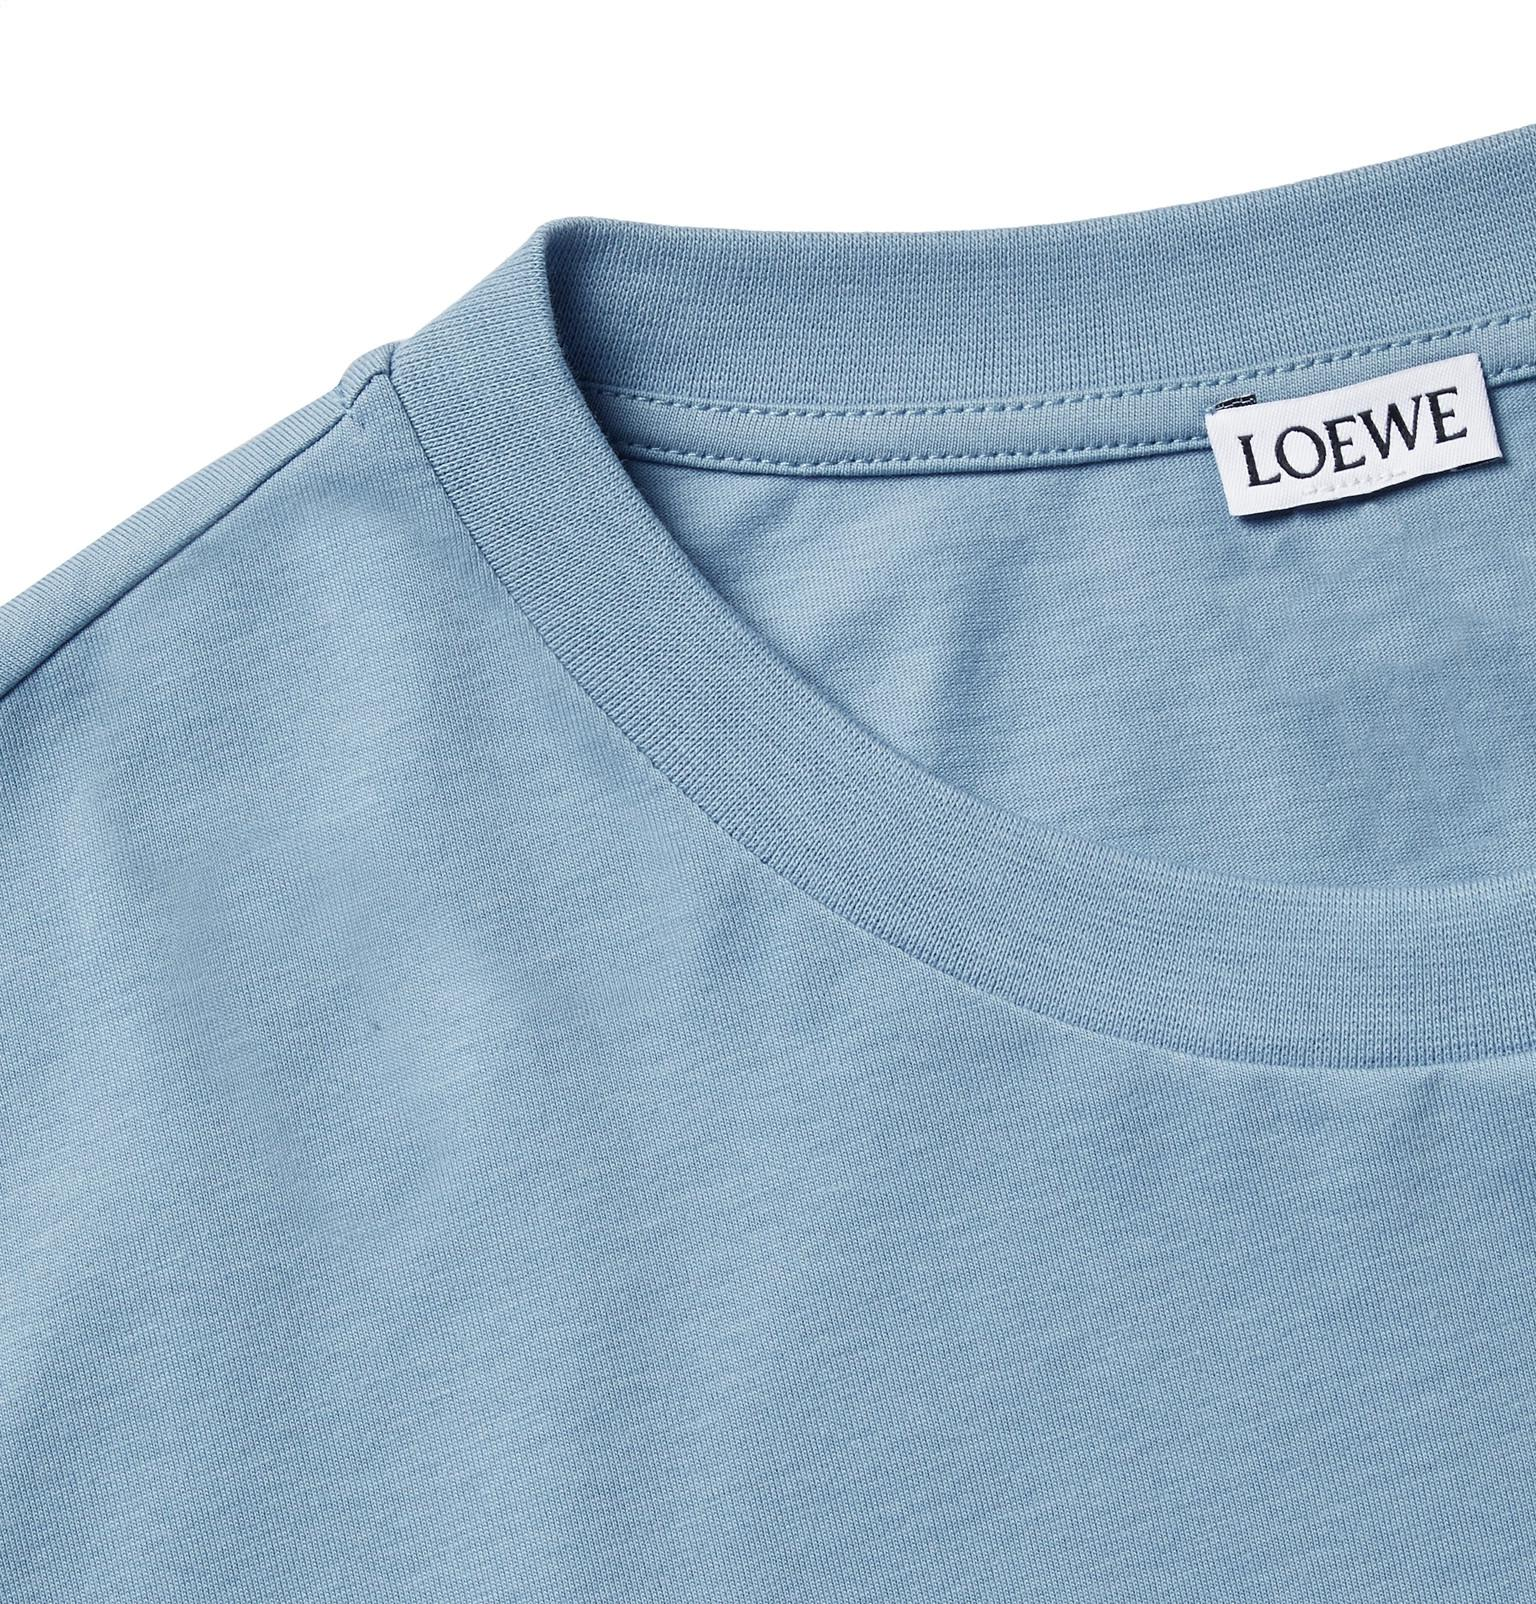 f220c09a396 Loewe Logo-embroidered Cotton-jersey T-shirt in Blue for Men - Lyst